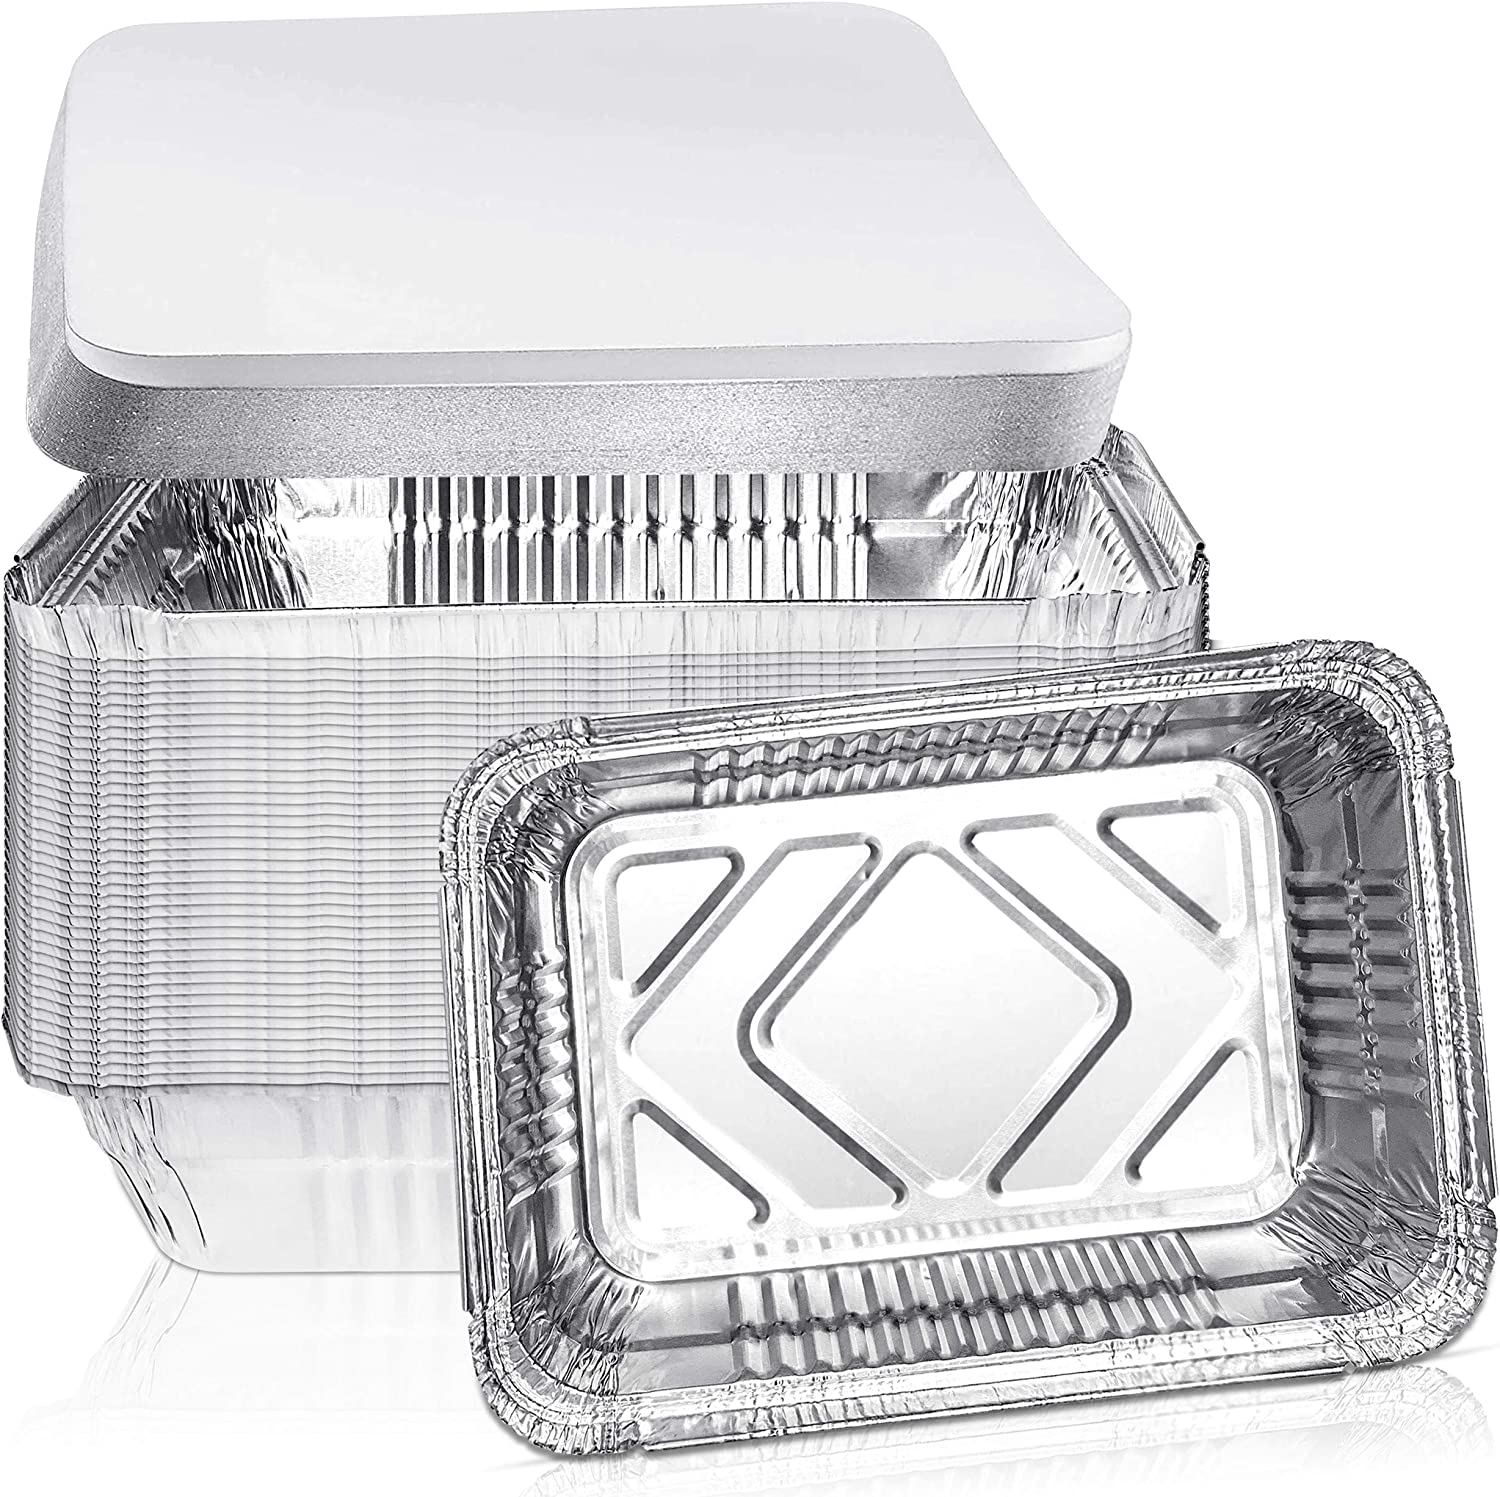 F.M Food Master Disposable Aluminum Oblong Foil Pans with Lids –Heavy Duty Food Storage Tray Containers with lids - Recyclable Tin Liners For Cooking Baking,Takeout (50 Pieces) 8.4